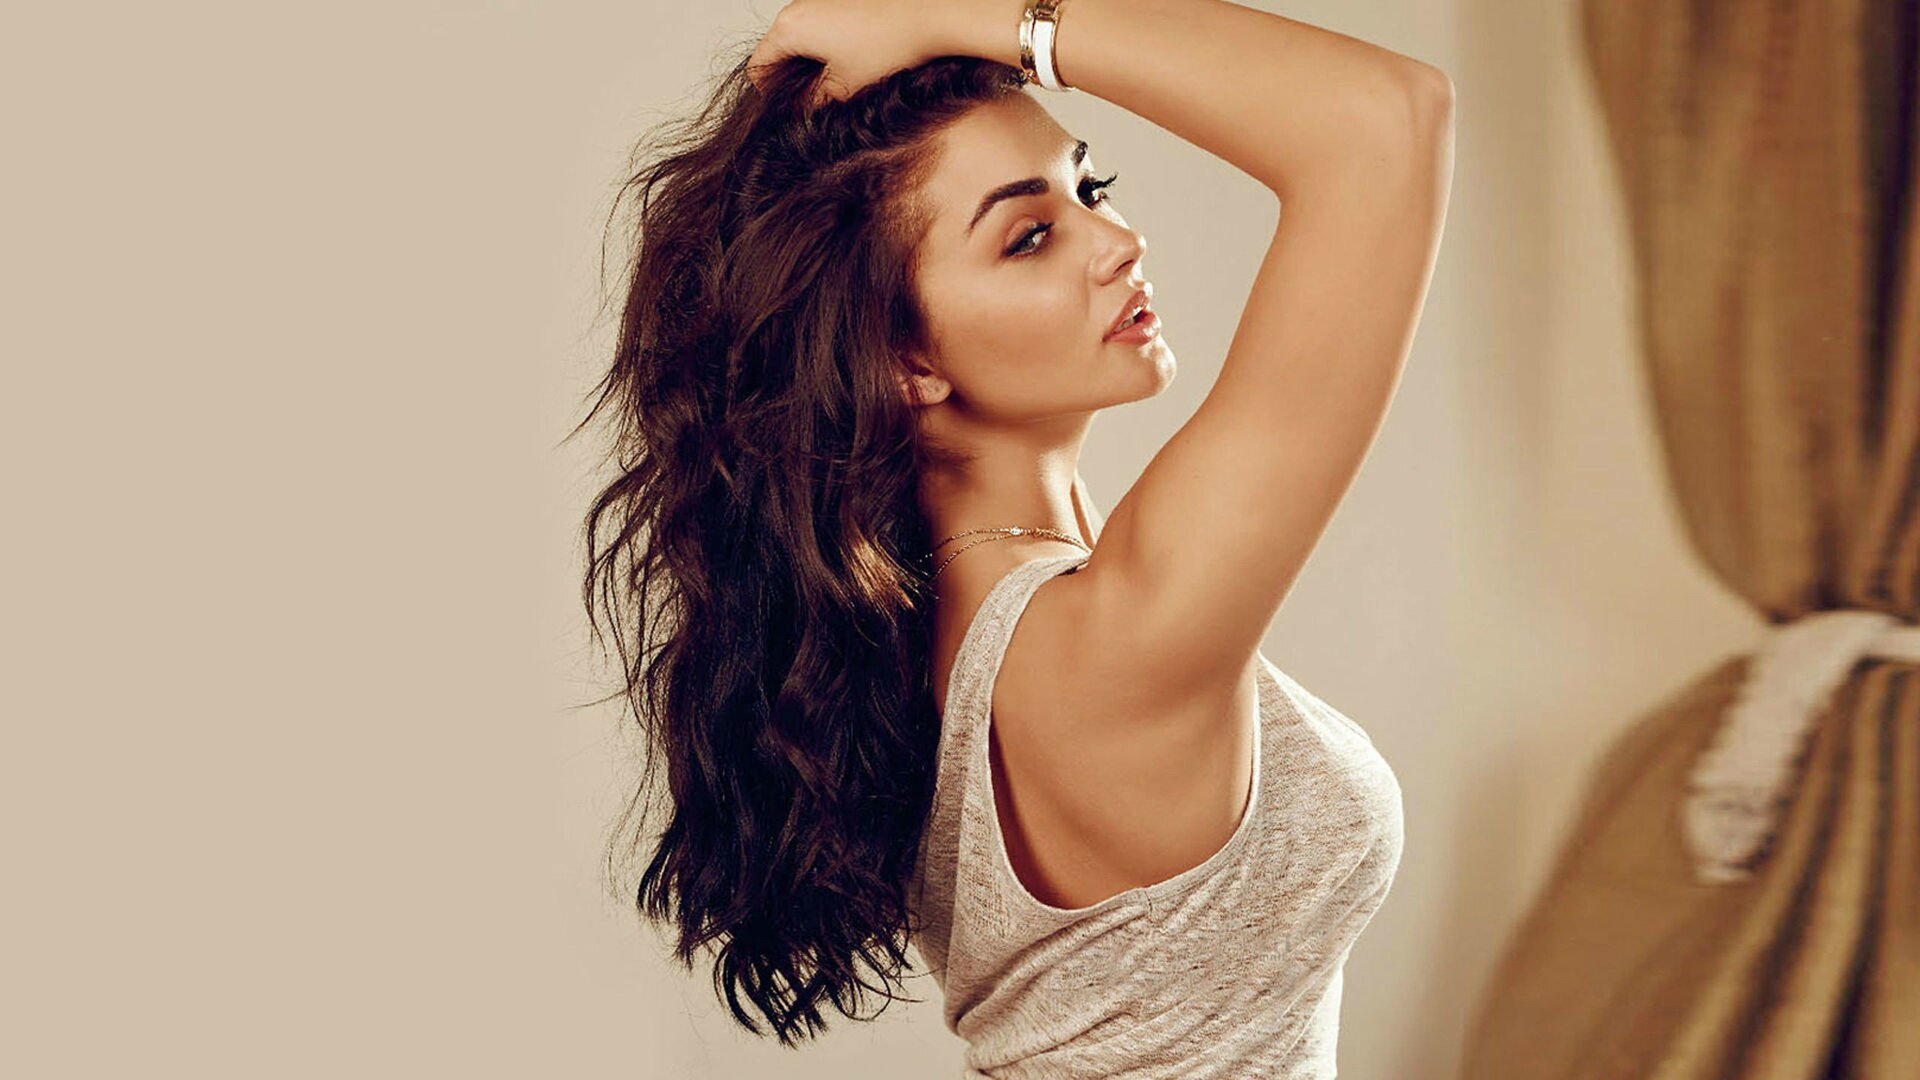 1920x1080 amy jackson indian laptop full hd 1080p hd 4k wallpapers